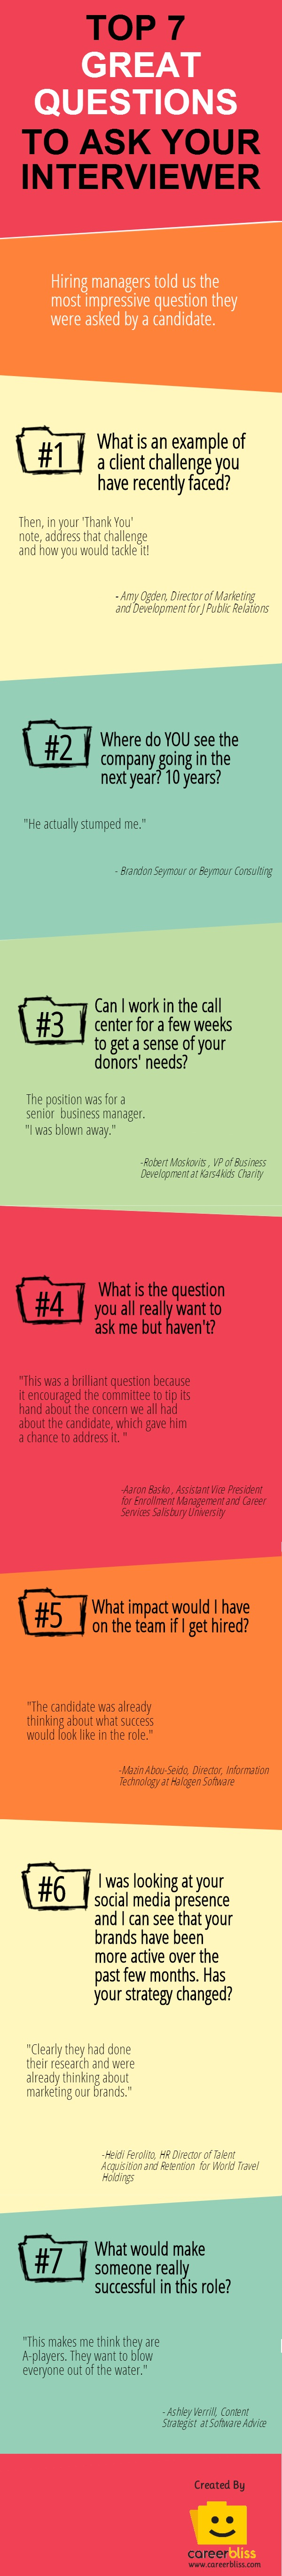 Excellent questions to ask your interviewer (Click to enlarge)